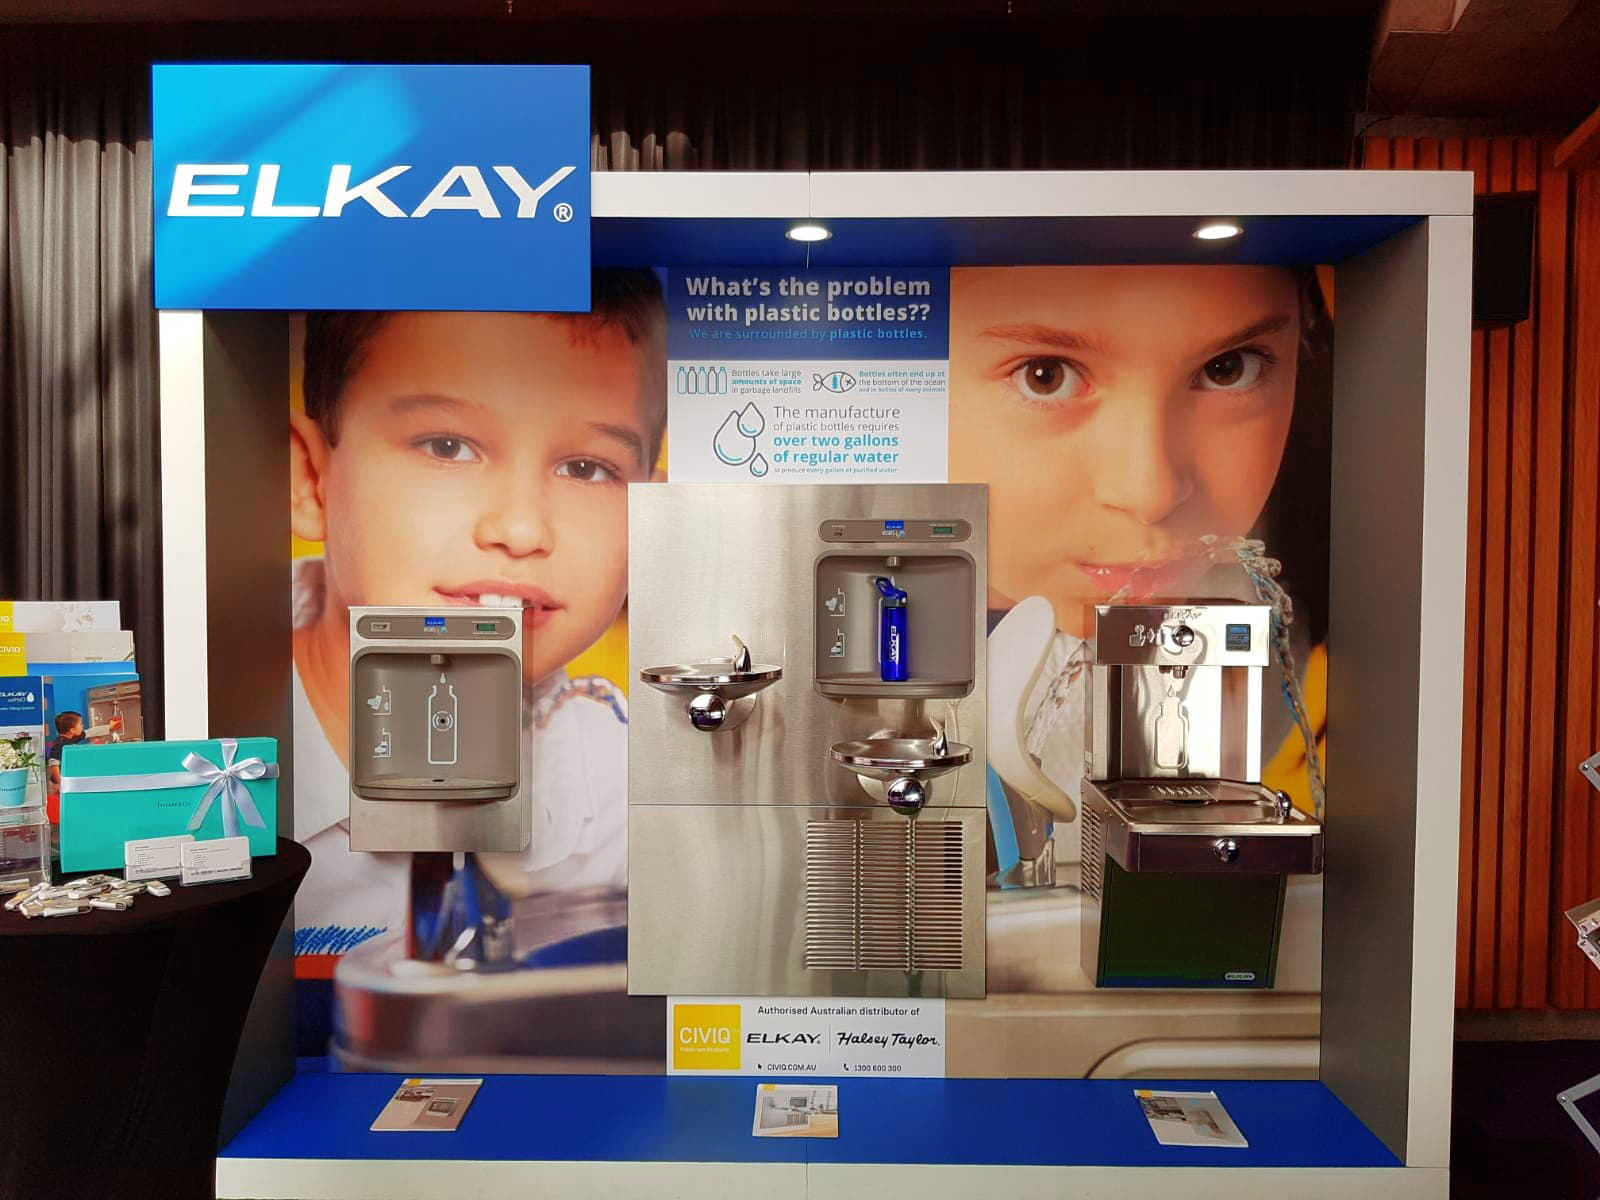 CIVIQ Showcases Elkay Drinking Fountains at The Opera House